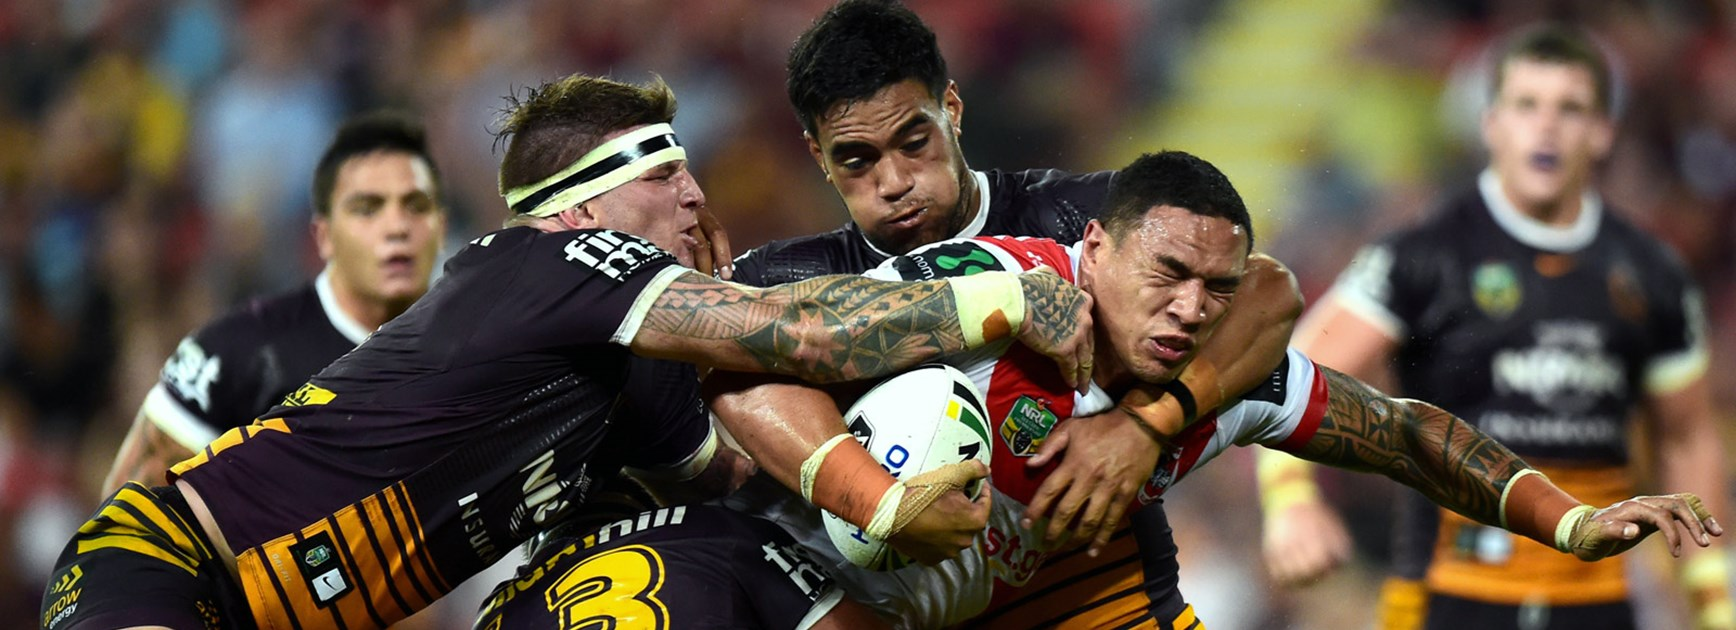 Broncos players tackle Tyson Frizell.